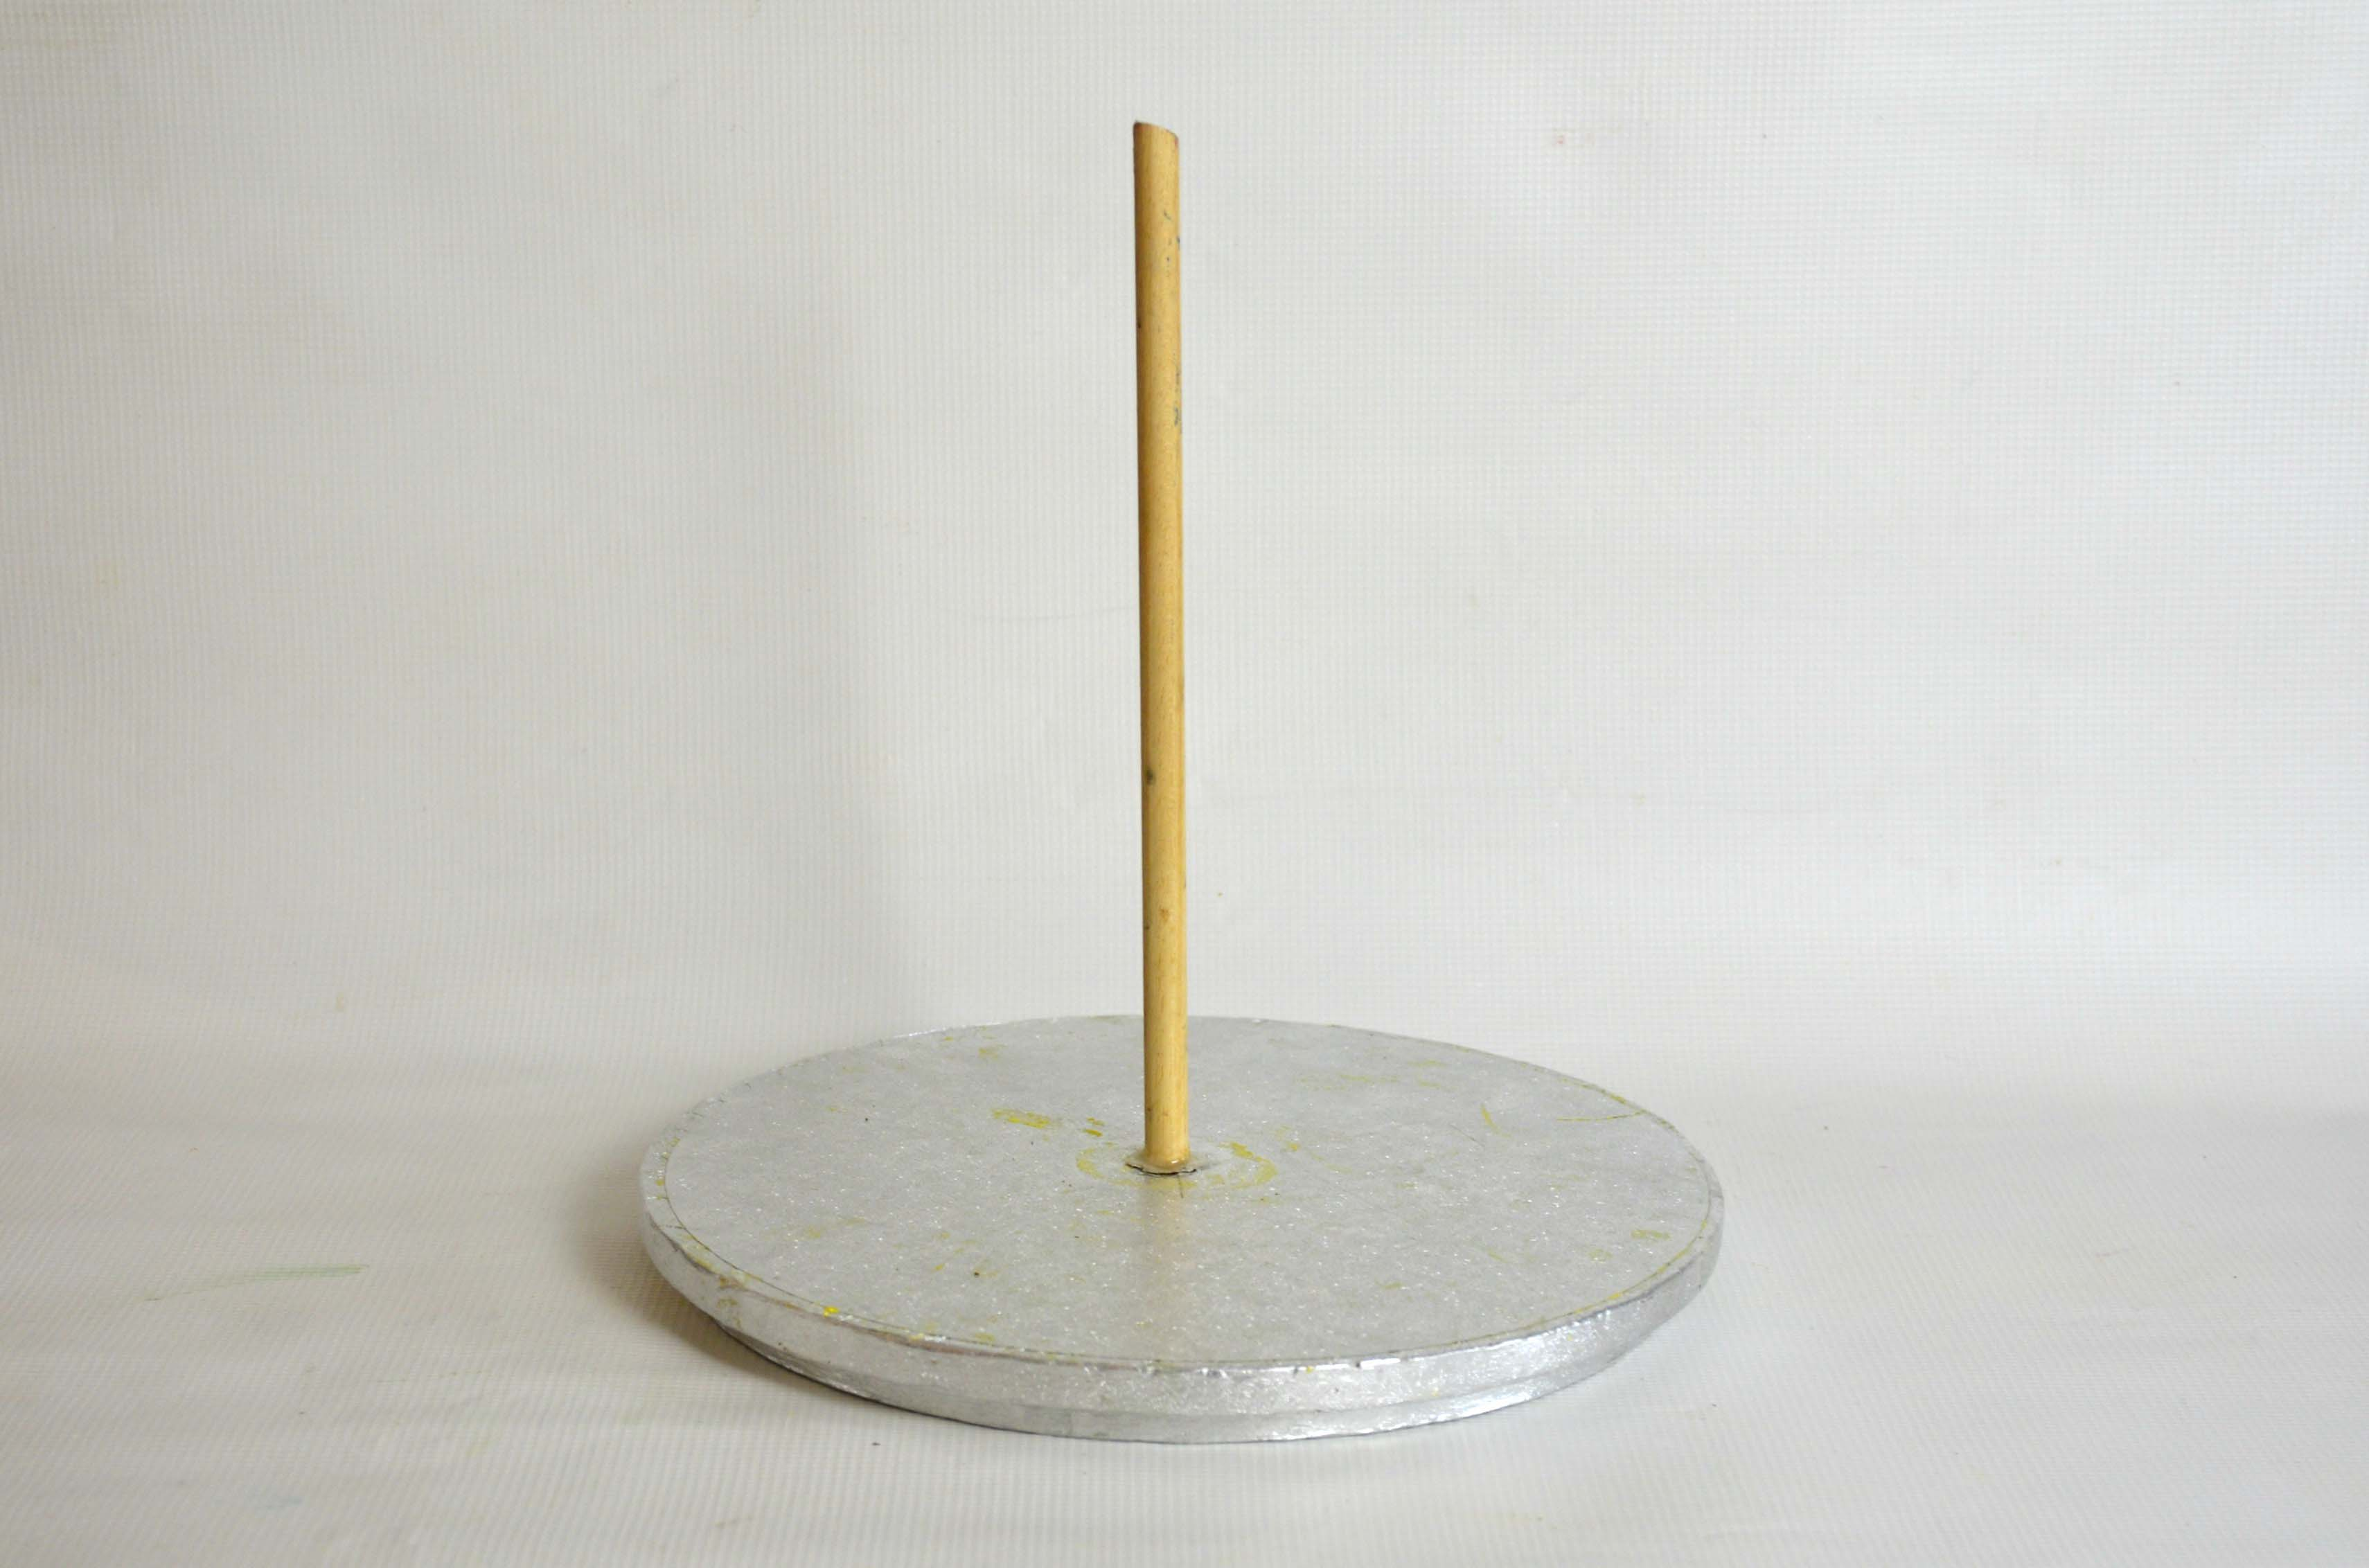 Cake and wooden dowel